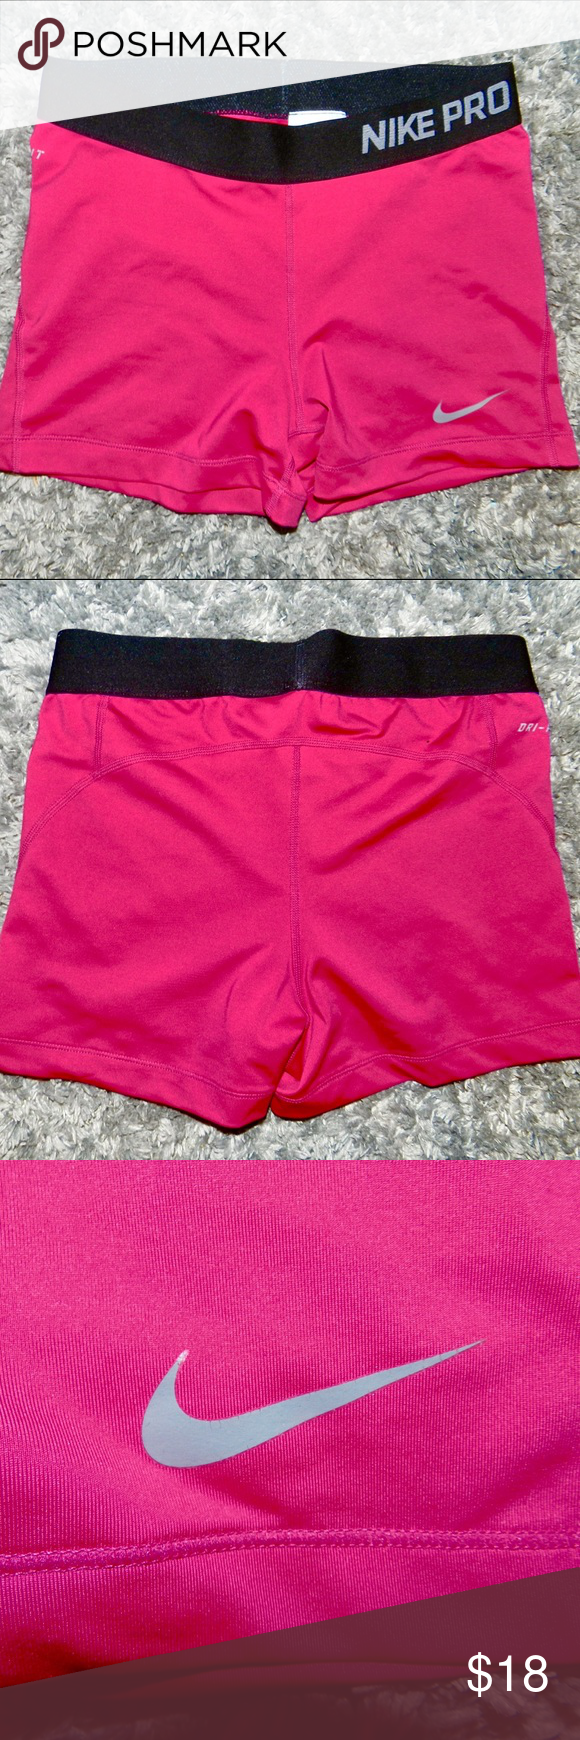 NIKE Pro Shorts Pink Size Medium Used Nike Pro Shorts in pink!! These babes are in great condition with almost no signs of wear. Nike Shorts